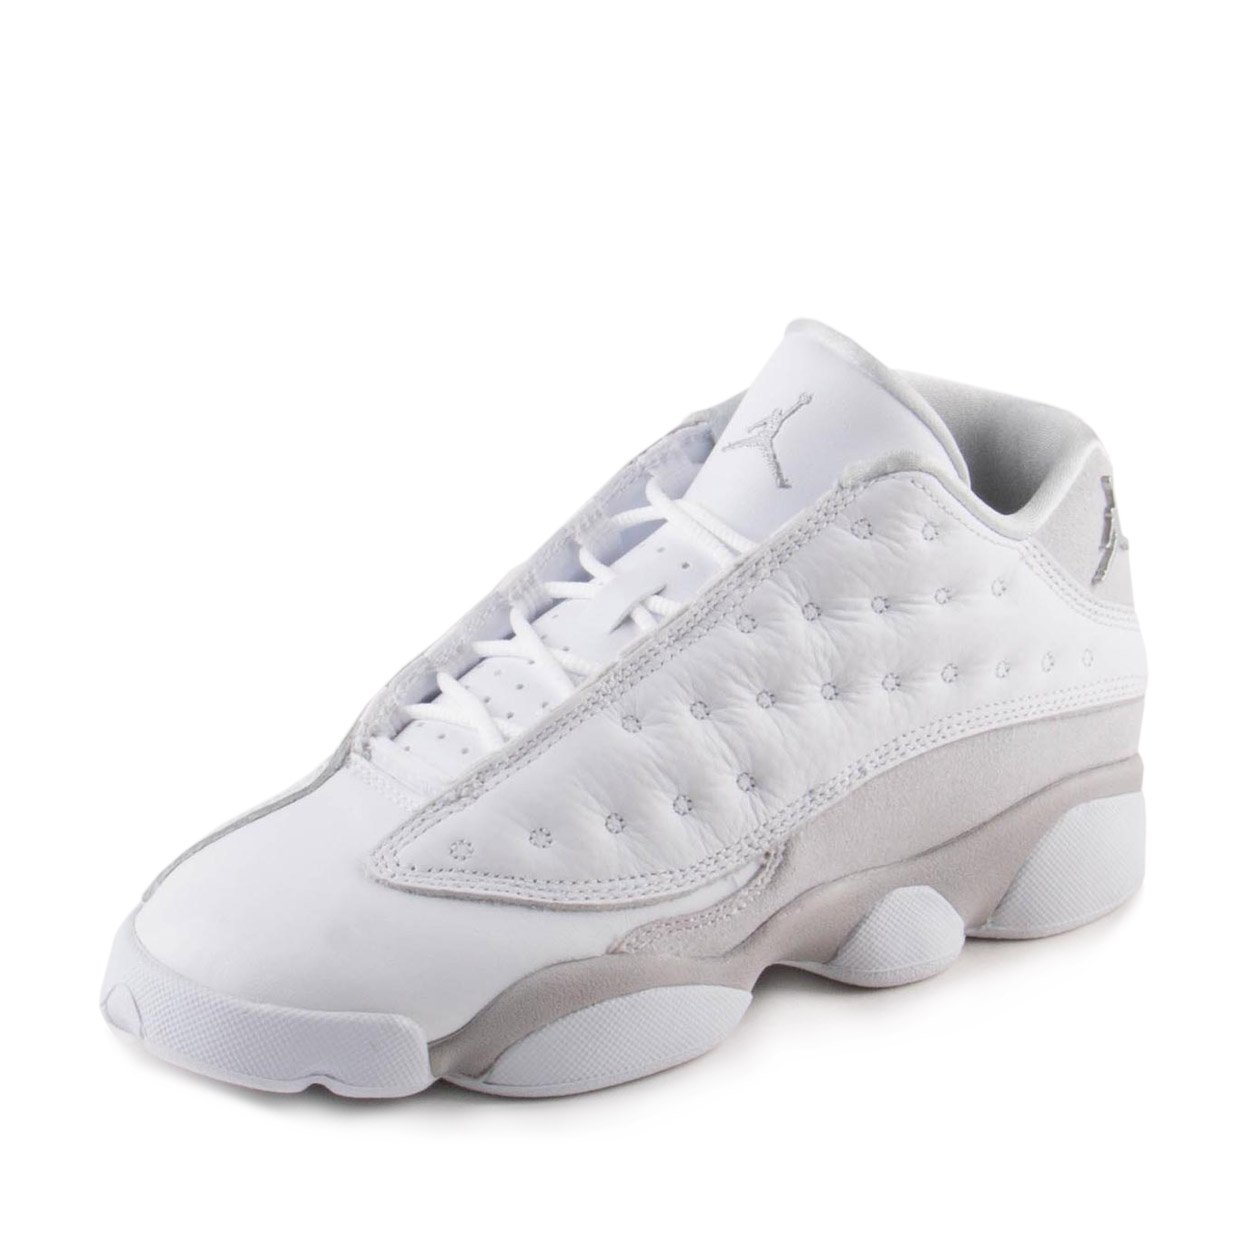 Jordan Retro 13 Low ''Pure Platinum'' White/Metallic Silver (Big Kid) (6.5 M US Big Kid) by Jordan